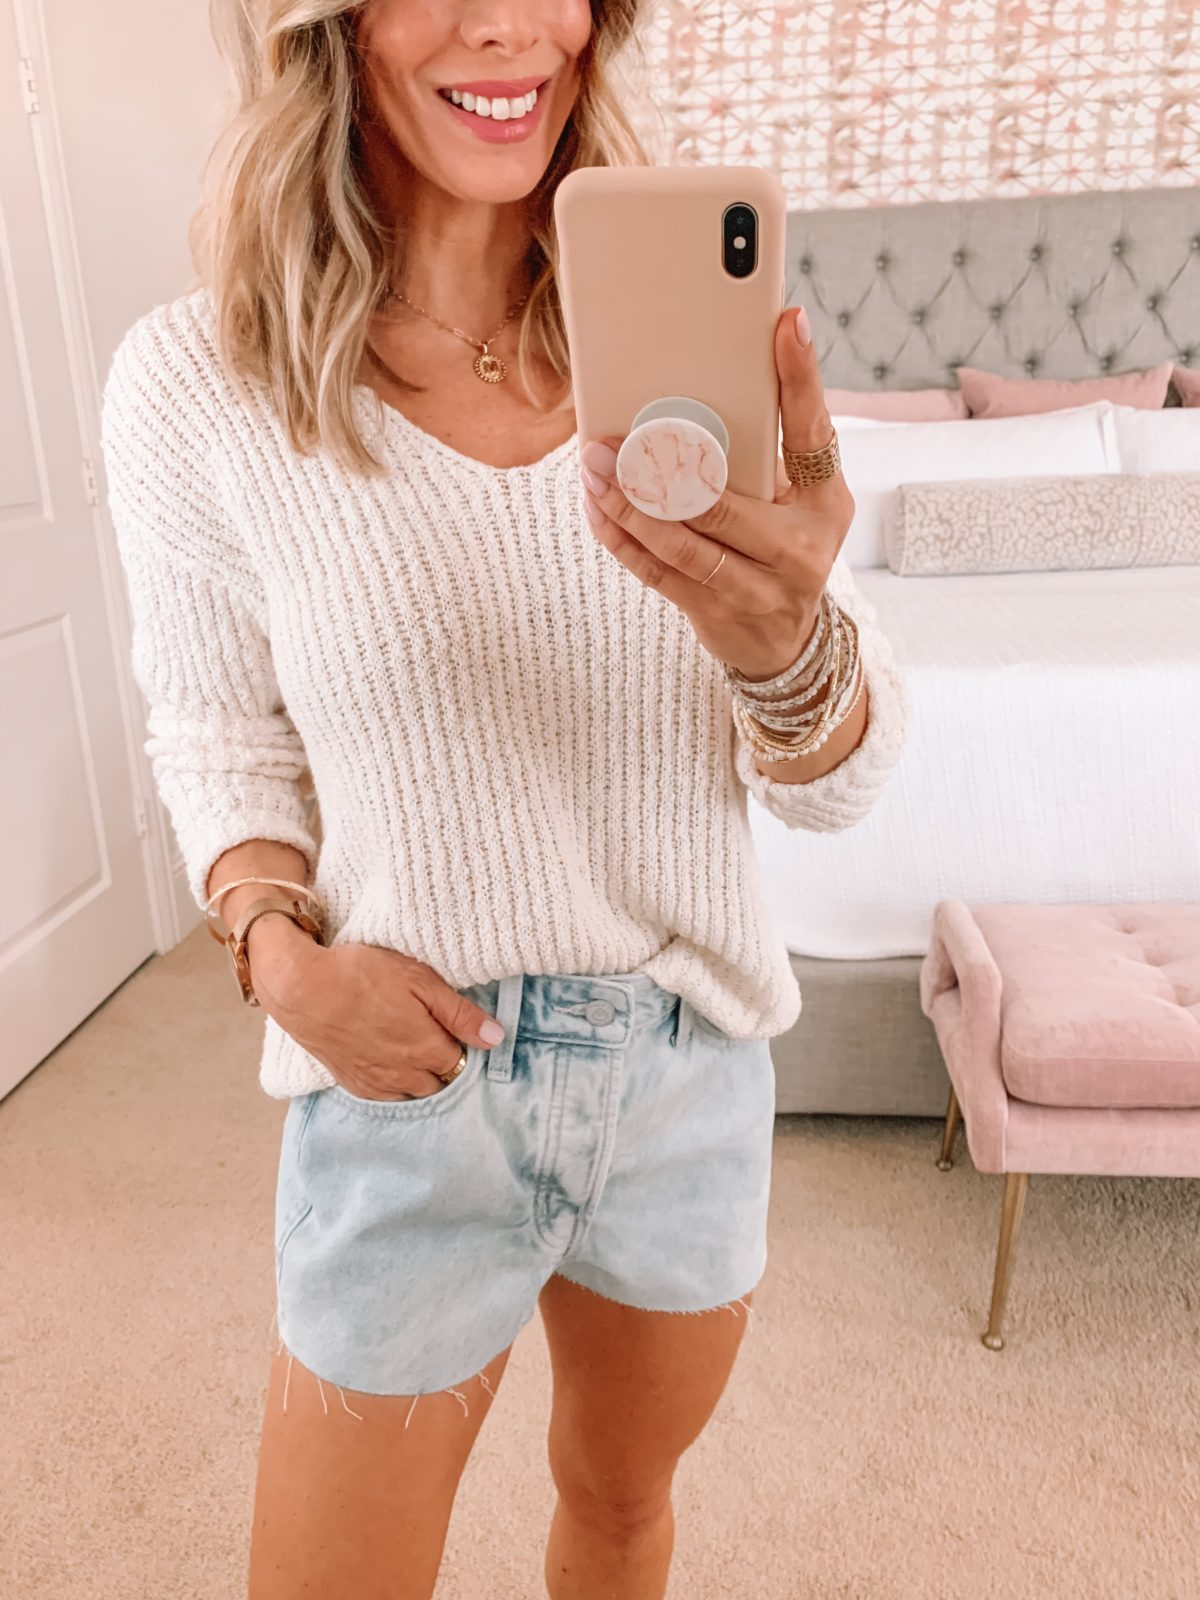 Dressing Room Finds, Summer Sweater and Denim Shorts with Sandals